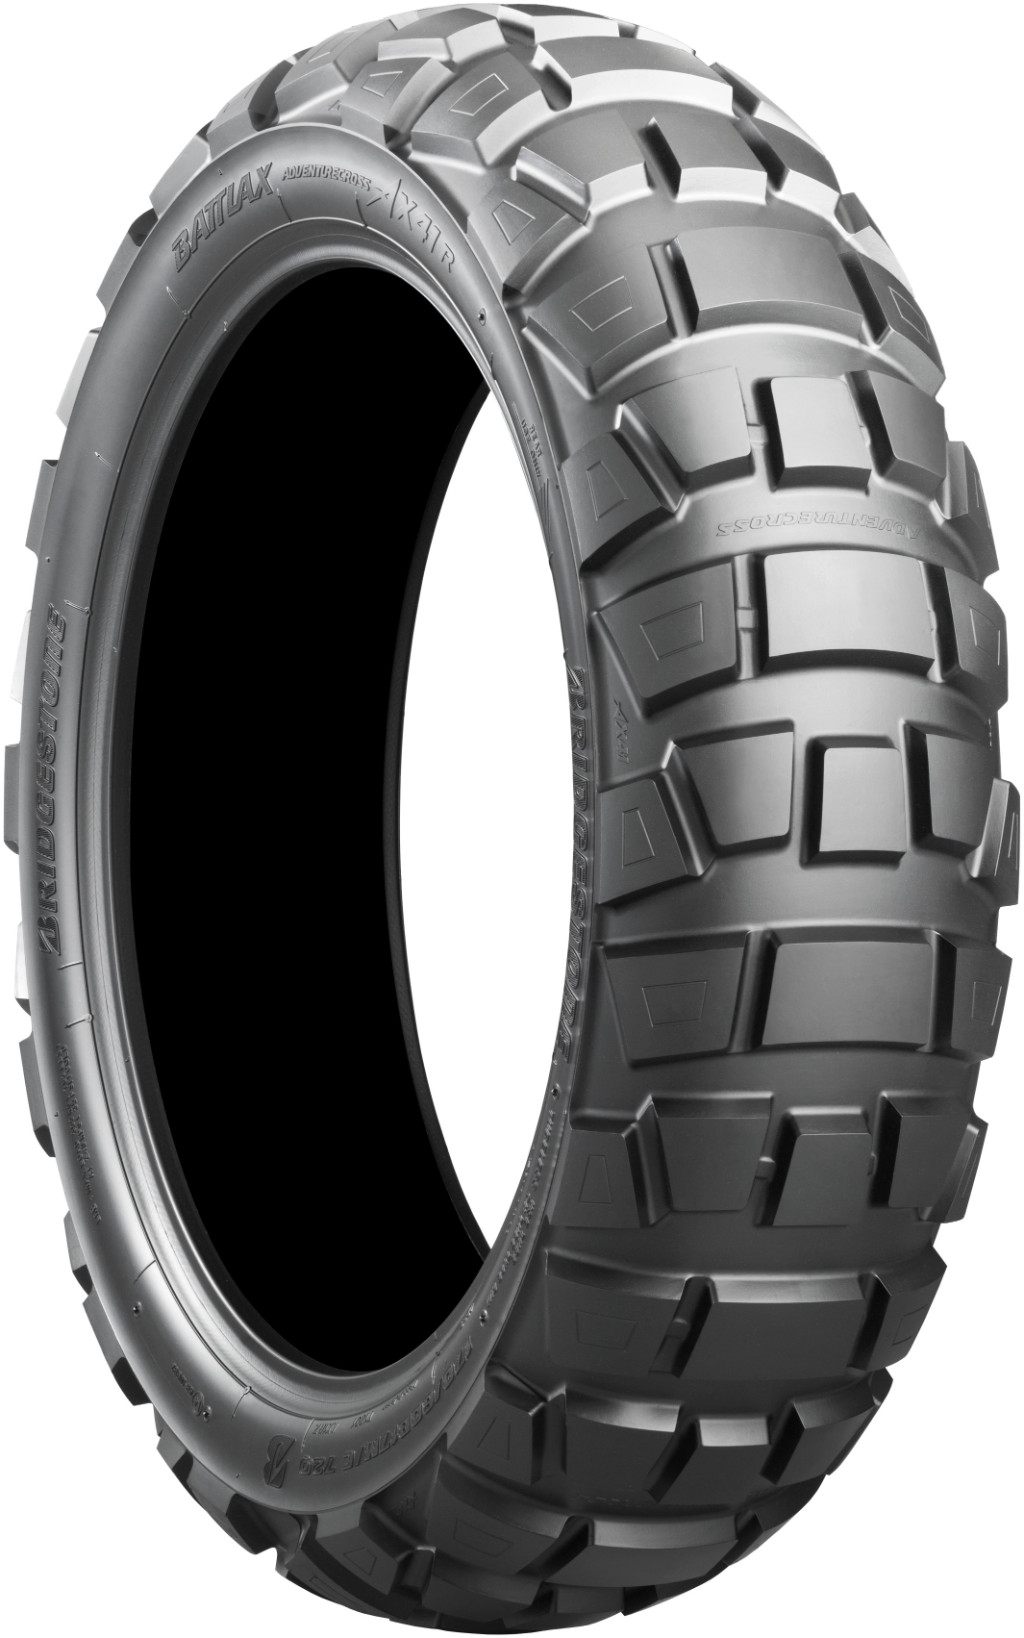 BRIDGESTONE BATTLAX ADVENTURECROSS AX41 [150/70B 17M/C 69Q] Tire